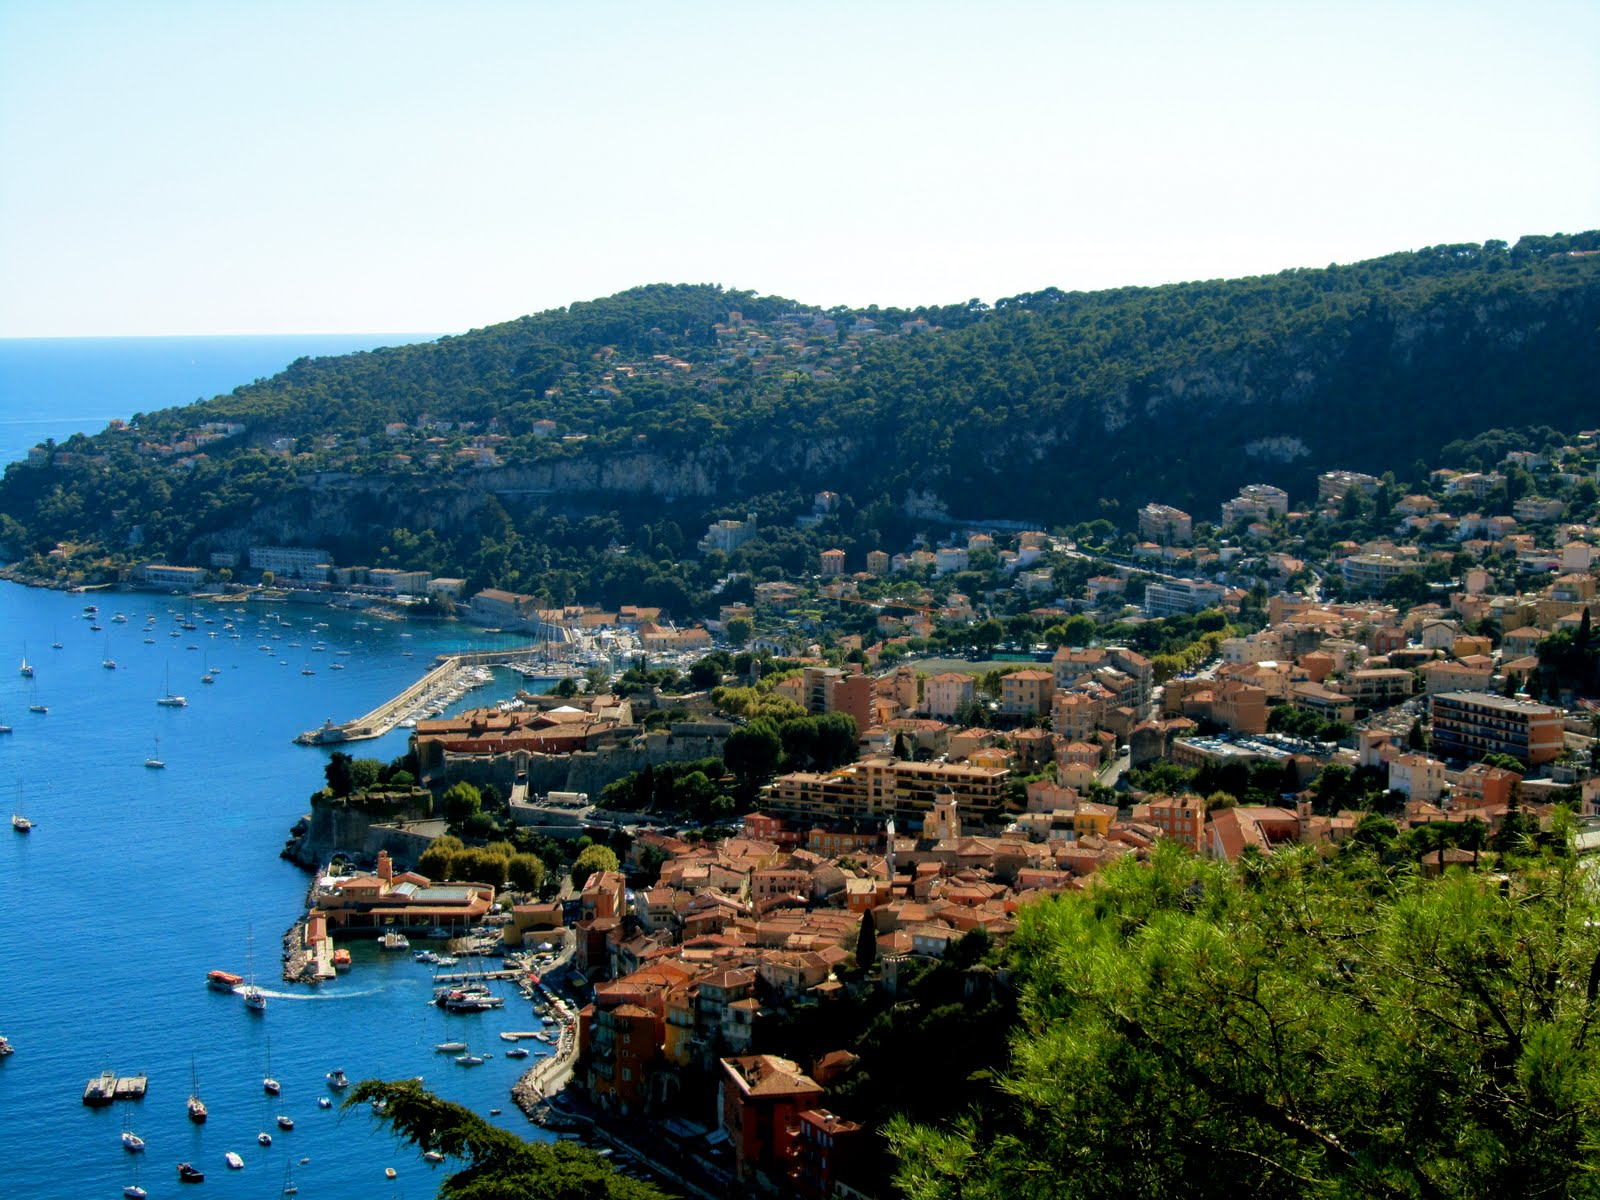 The French Riviera Day - Eze, Monaco, Monte-Carlo, Cannes, Antibes & St Paul de Vence